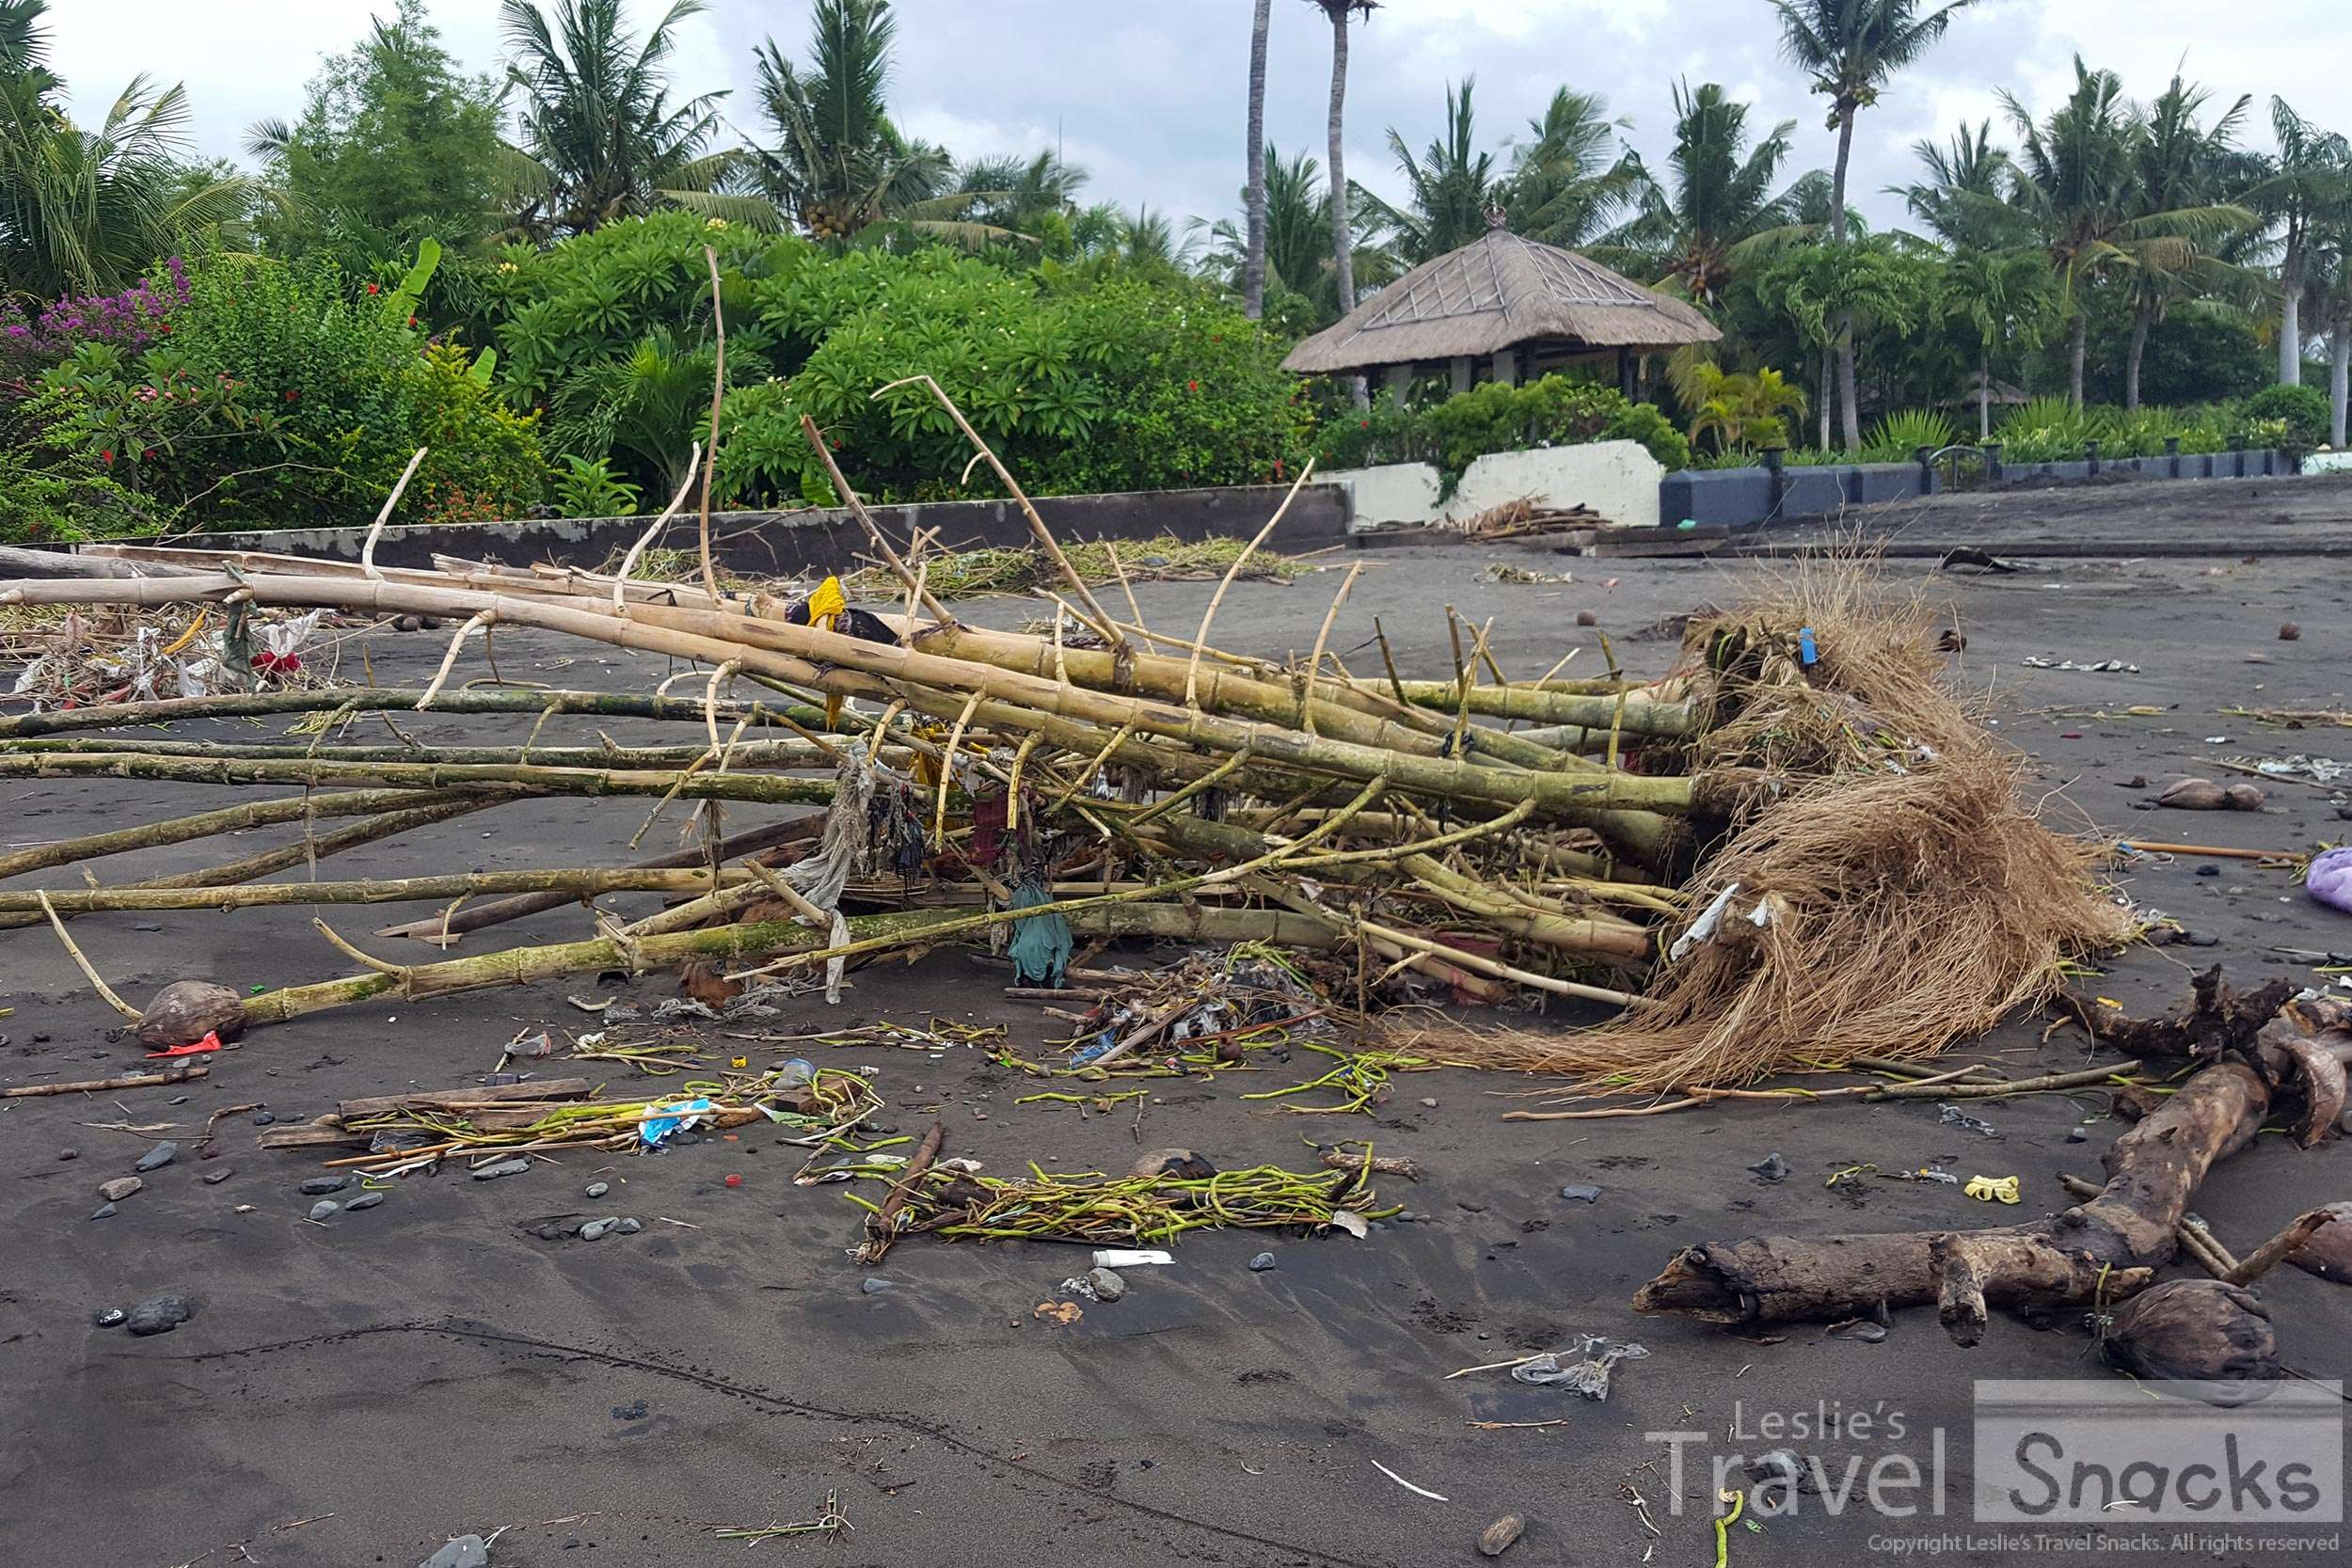 Looking up the beach, there were huge clumps of bamboo and large piles of god knows what washed up from the storm the night before.